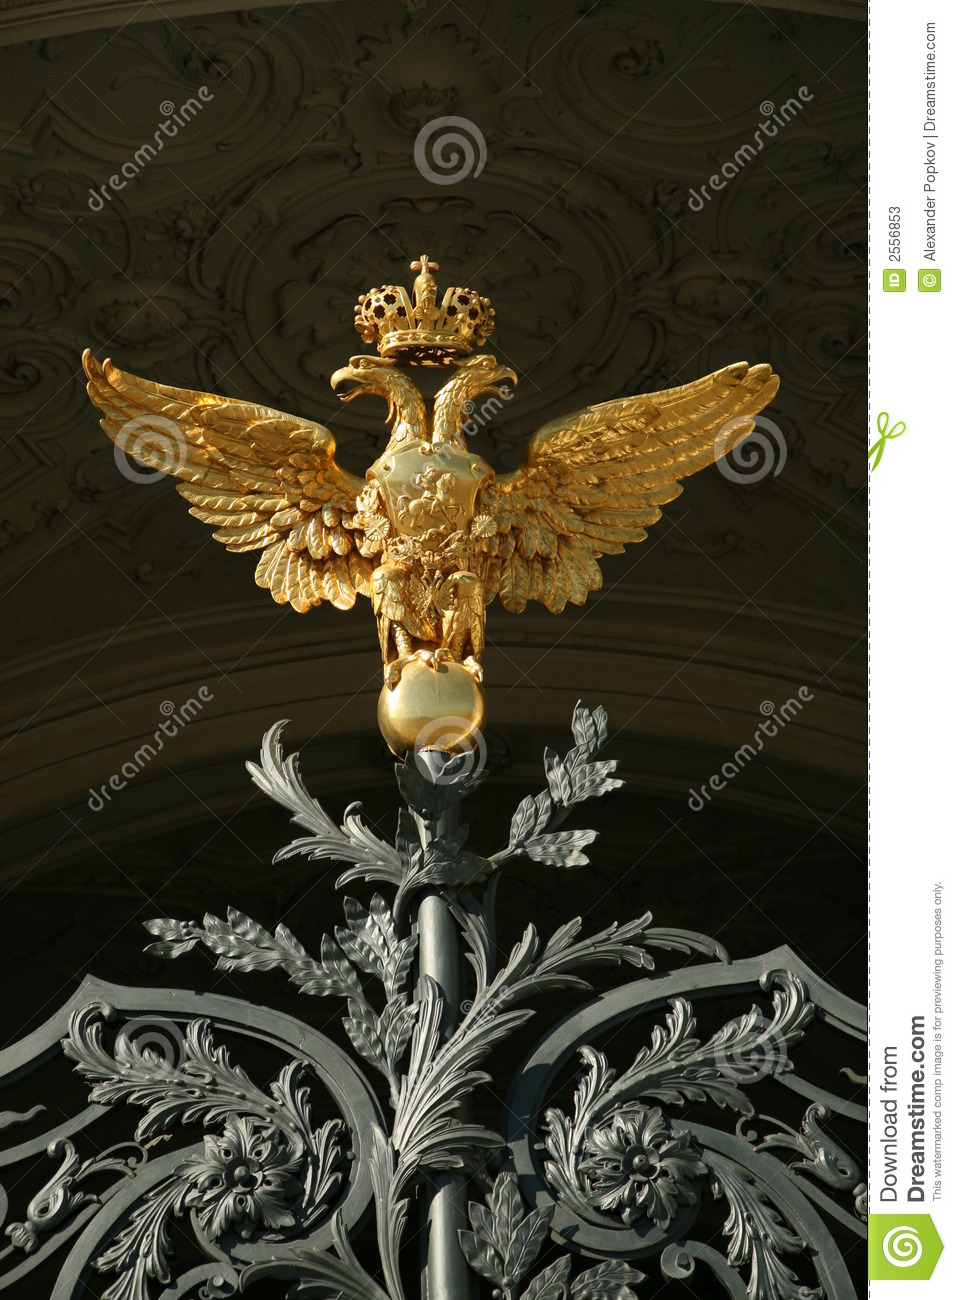 Russian Imperial Eagle Stock Photos - Image: 2556853